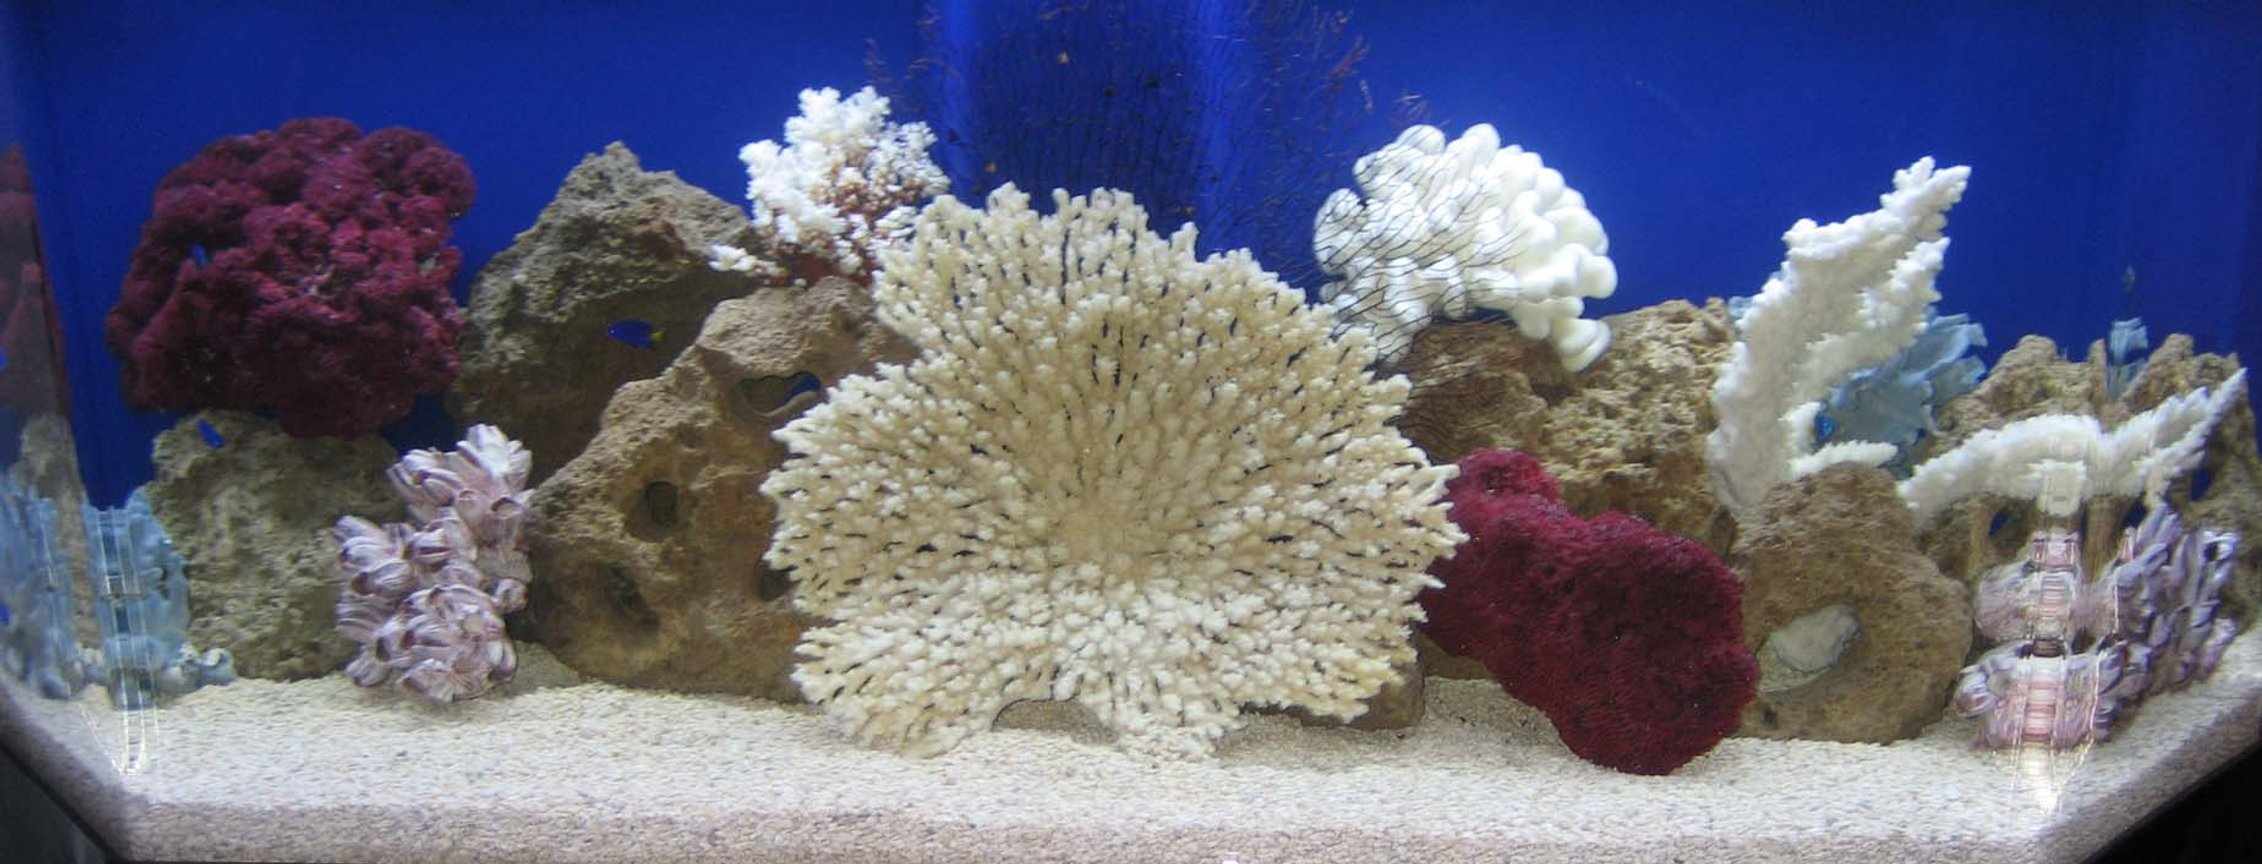 100 gallons saltwater fish tank (mostly fish, little/no live coral) - My Tank